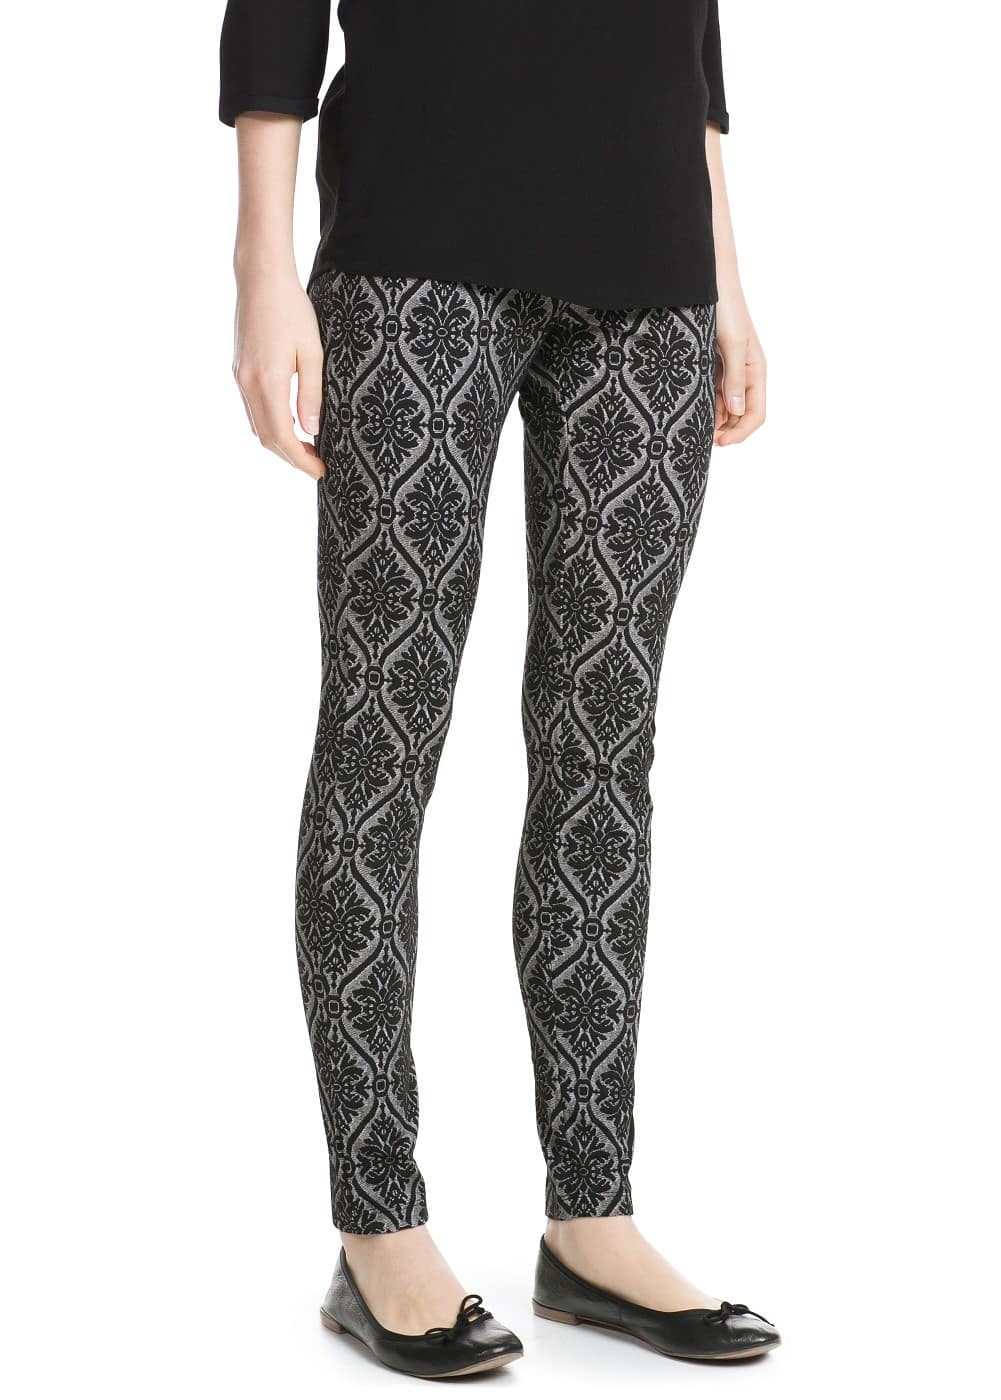 Baroque pattern leggings